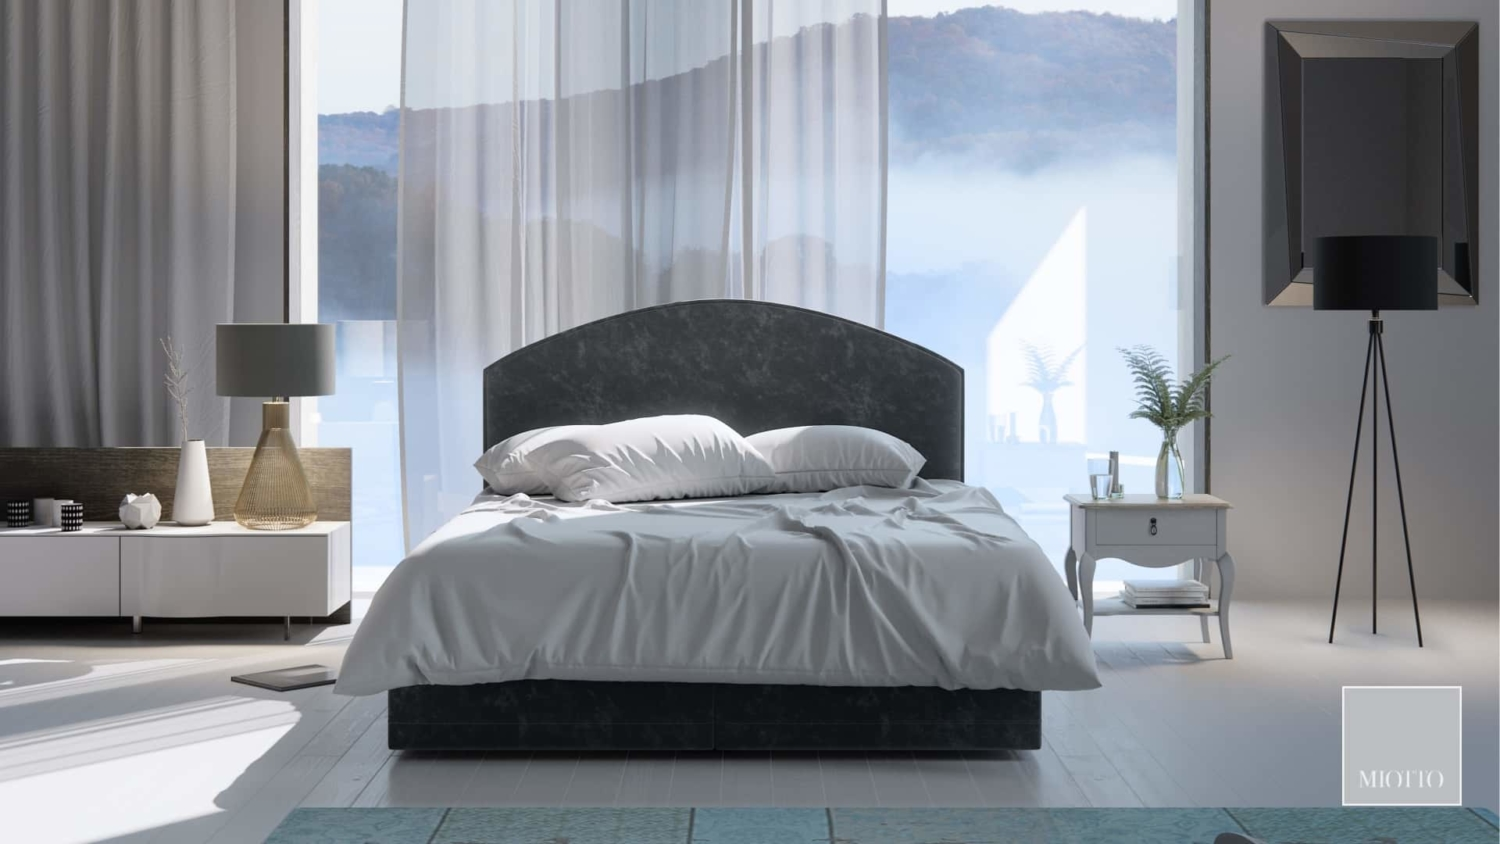 miotto_grace_anfora_gala_maroi_apua_belynia_tobagi_0001-1500x844 Royal Sleeper Boxspringbetten  %tags